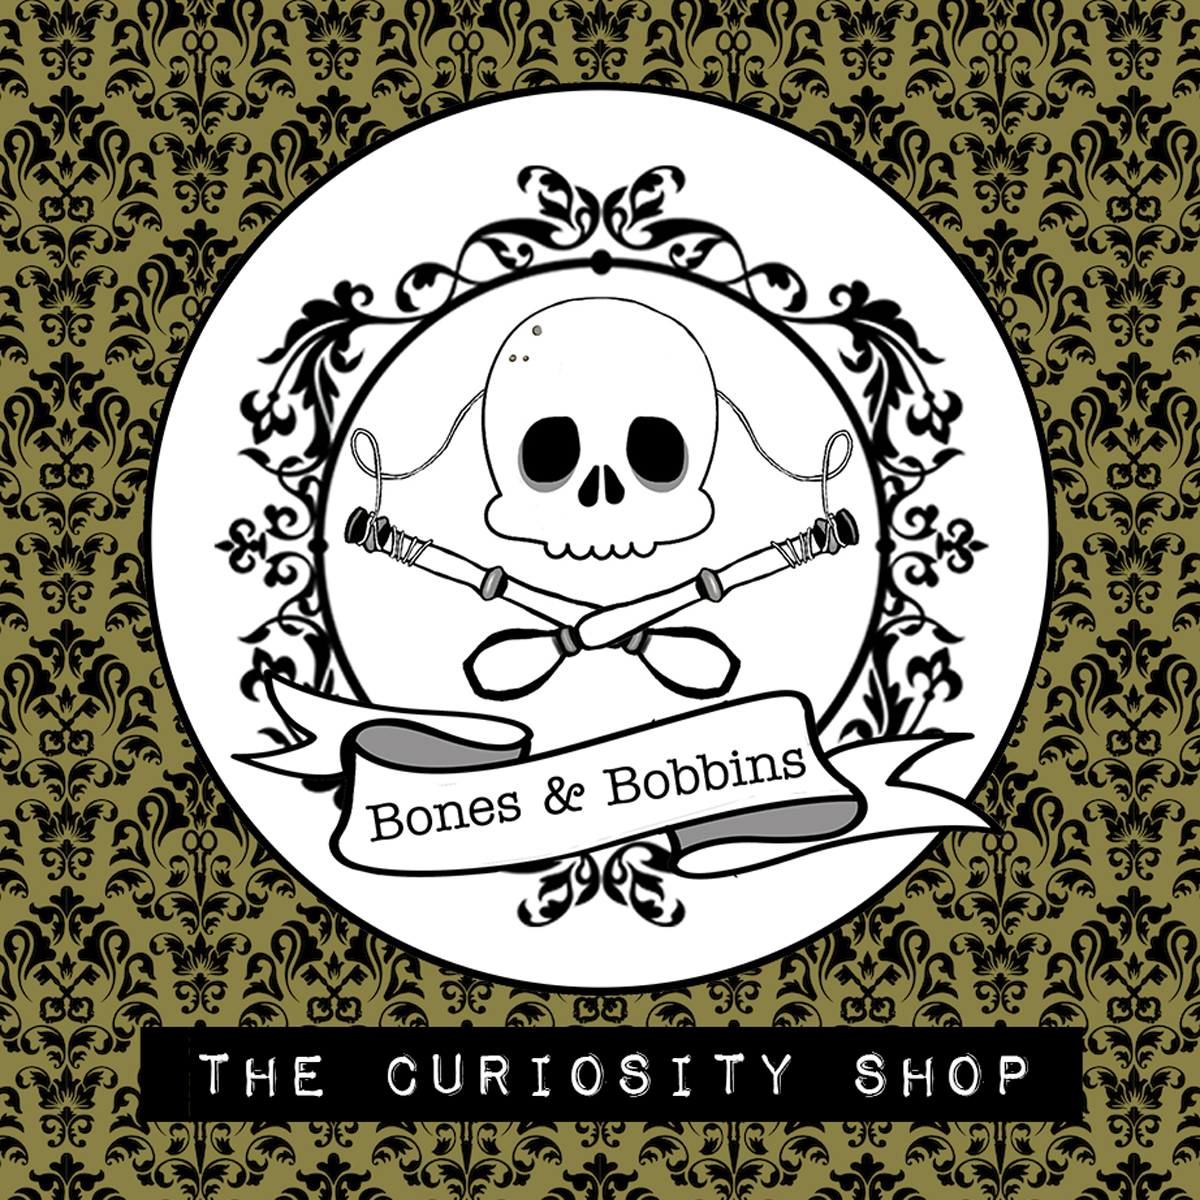 Patreon Dispatches from the Curiosity Shop